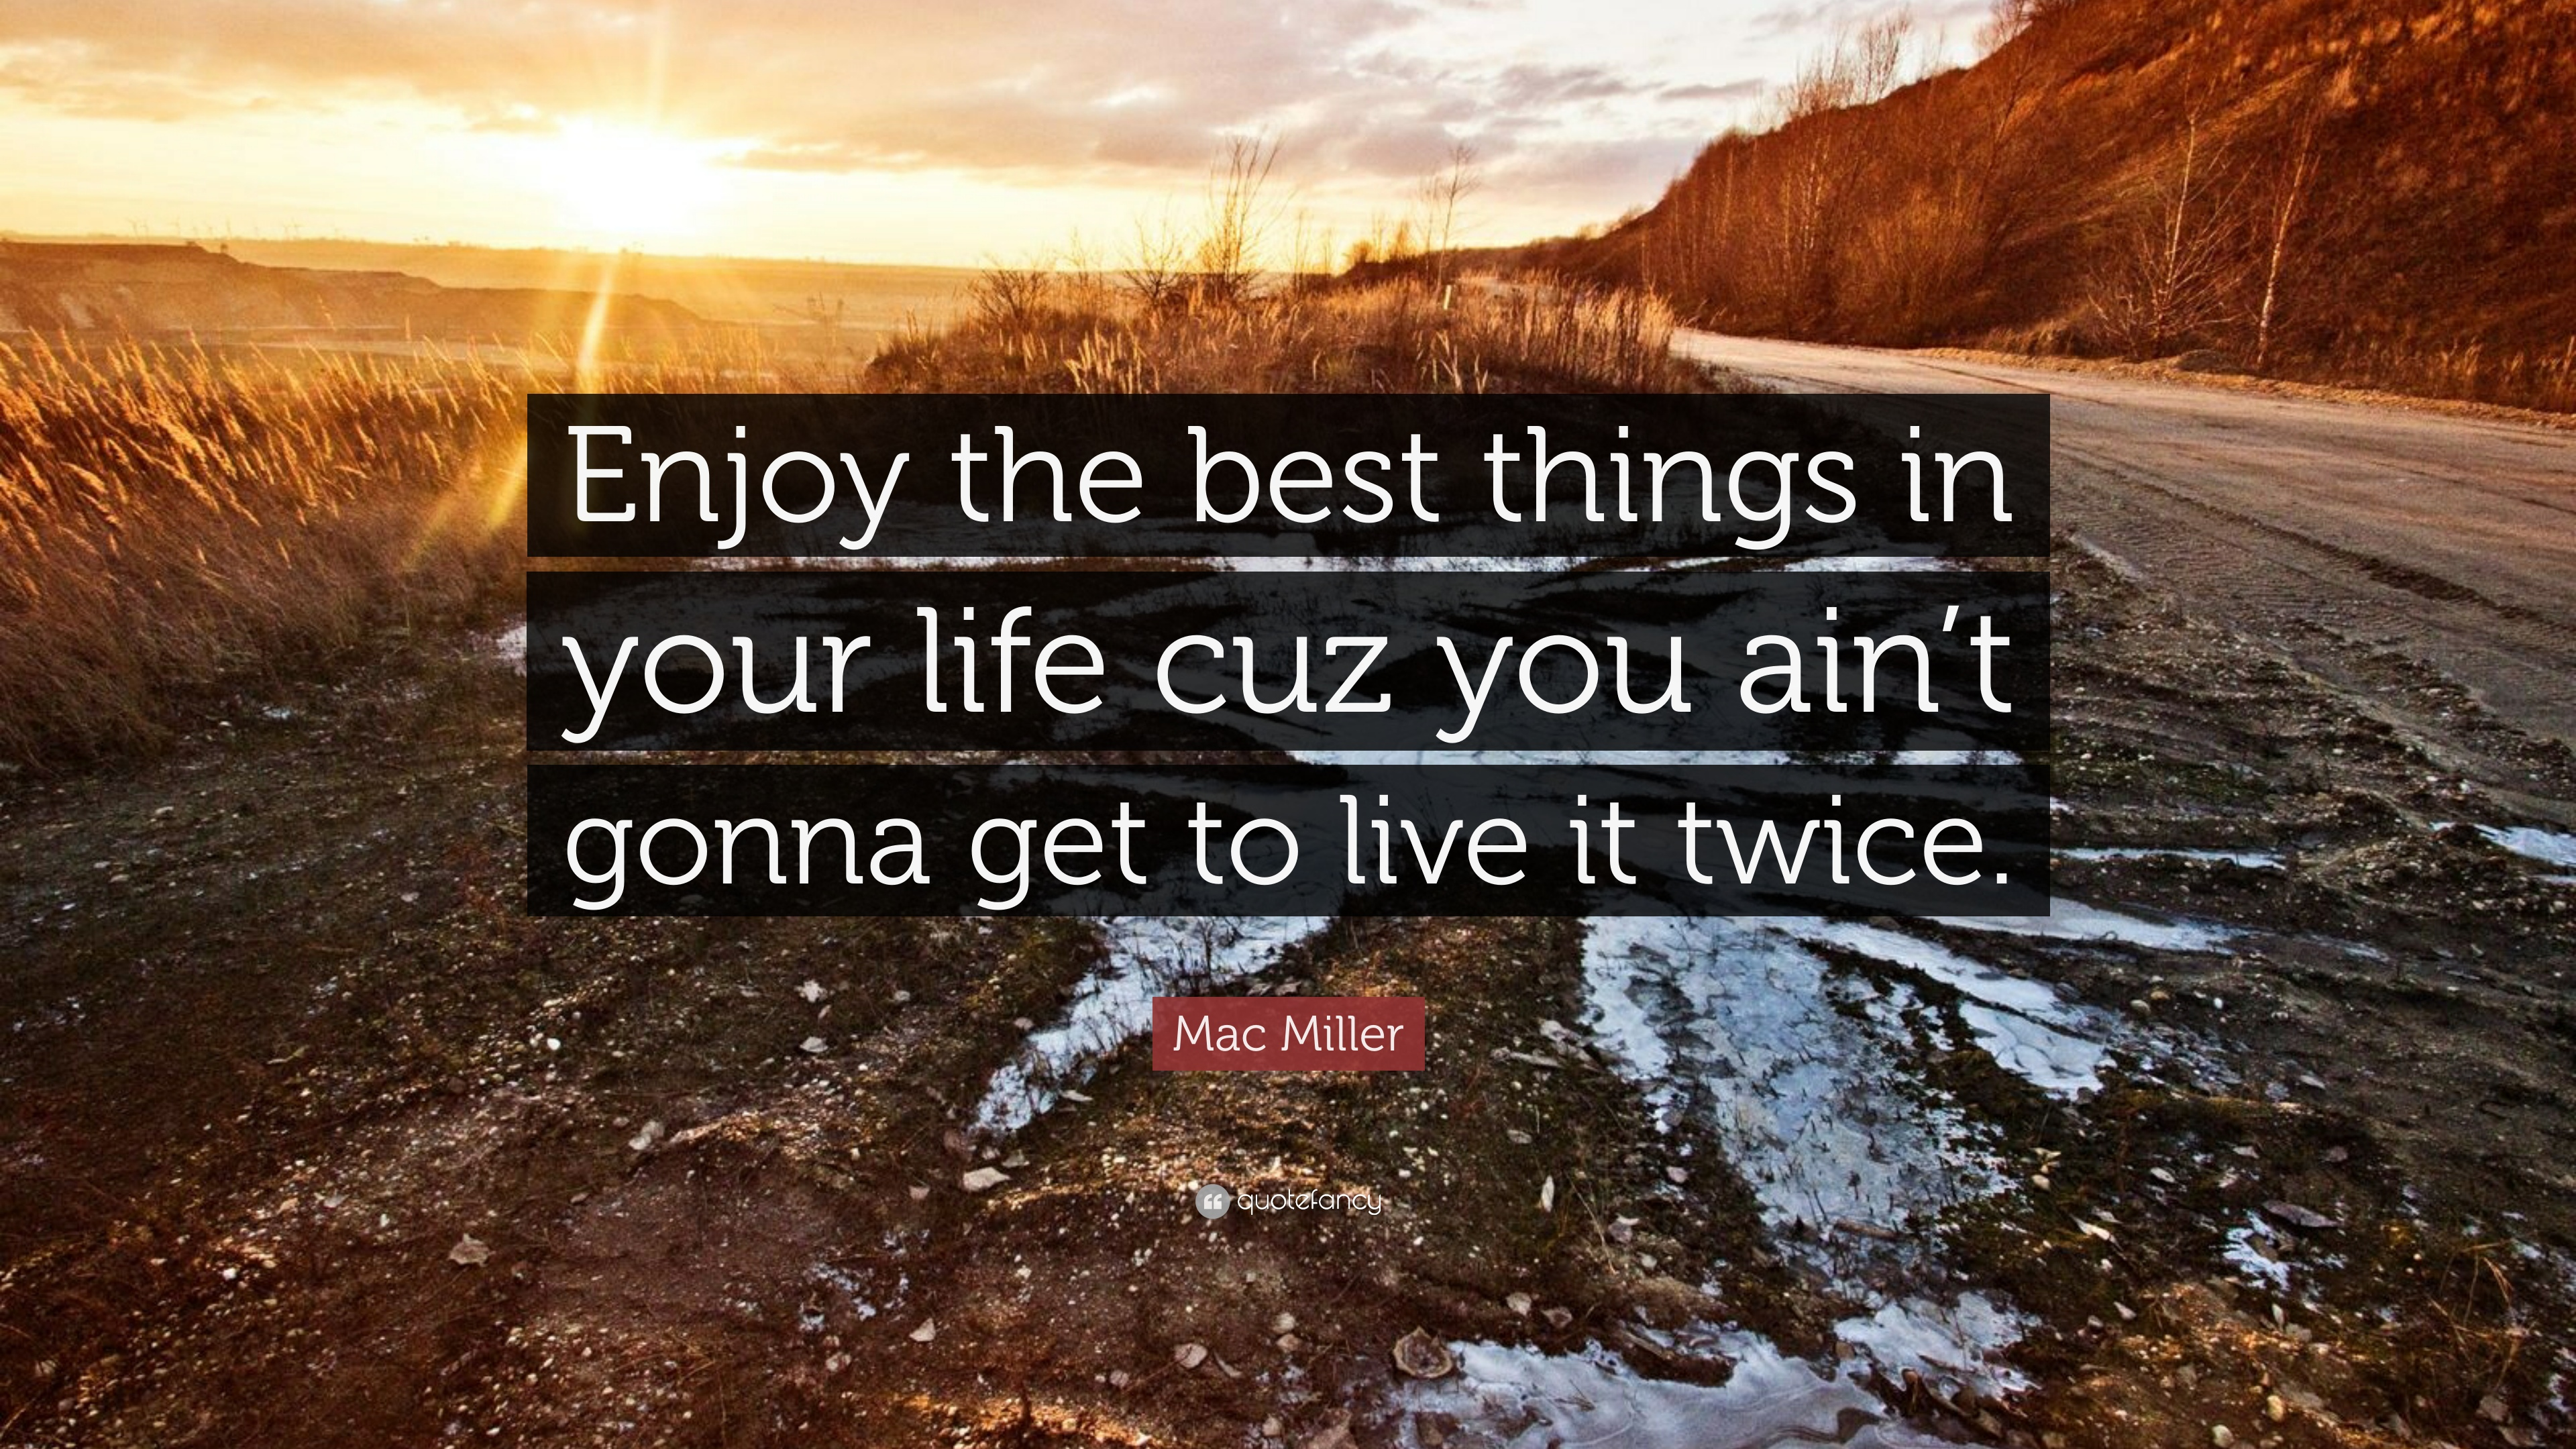 The best thing in your life